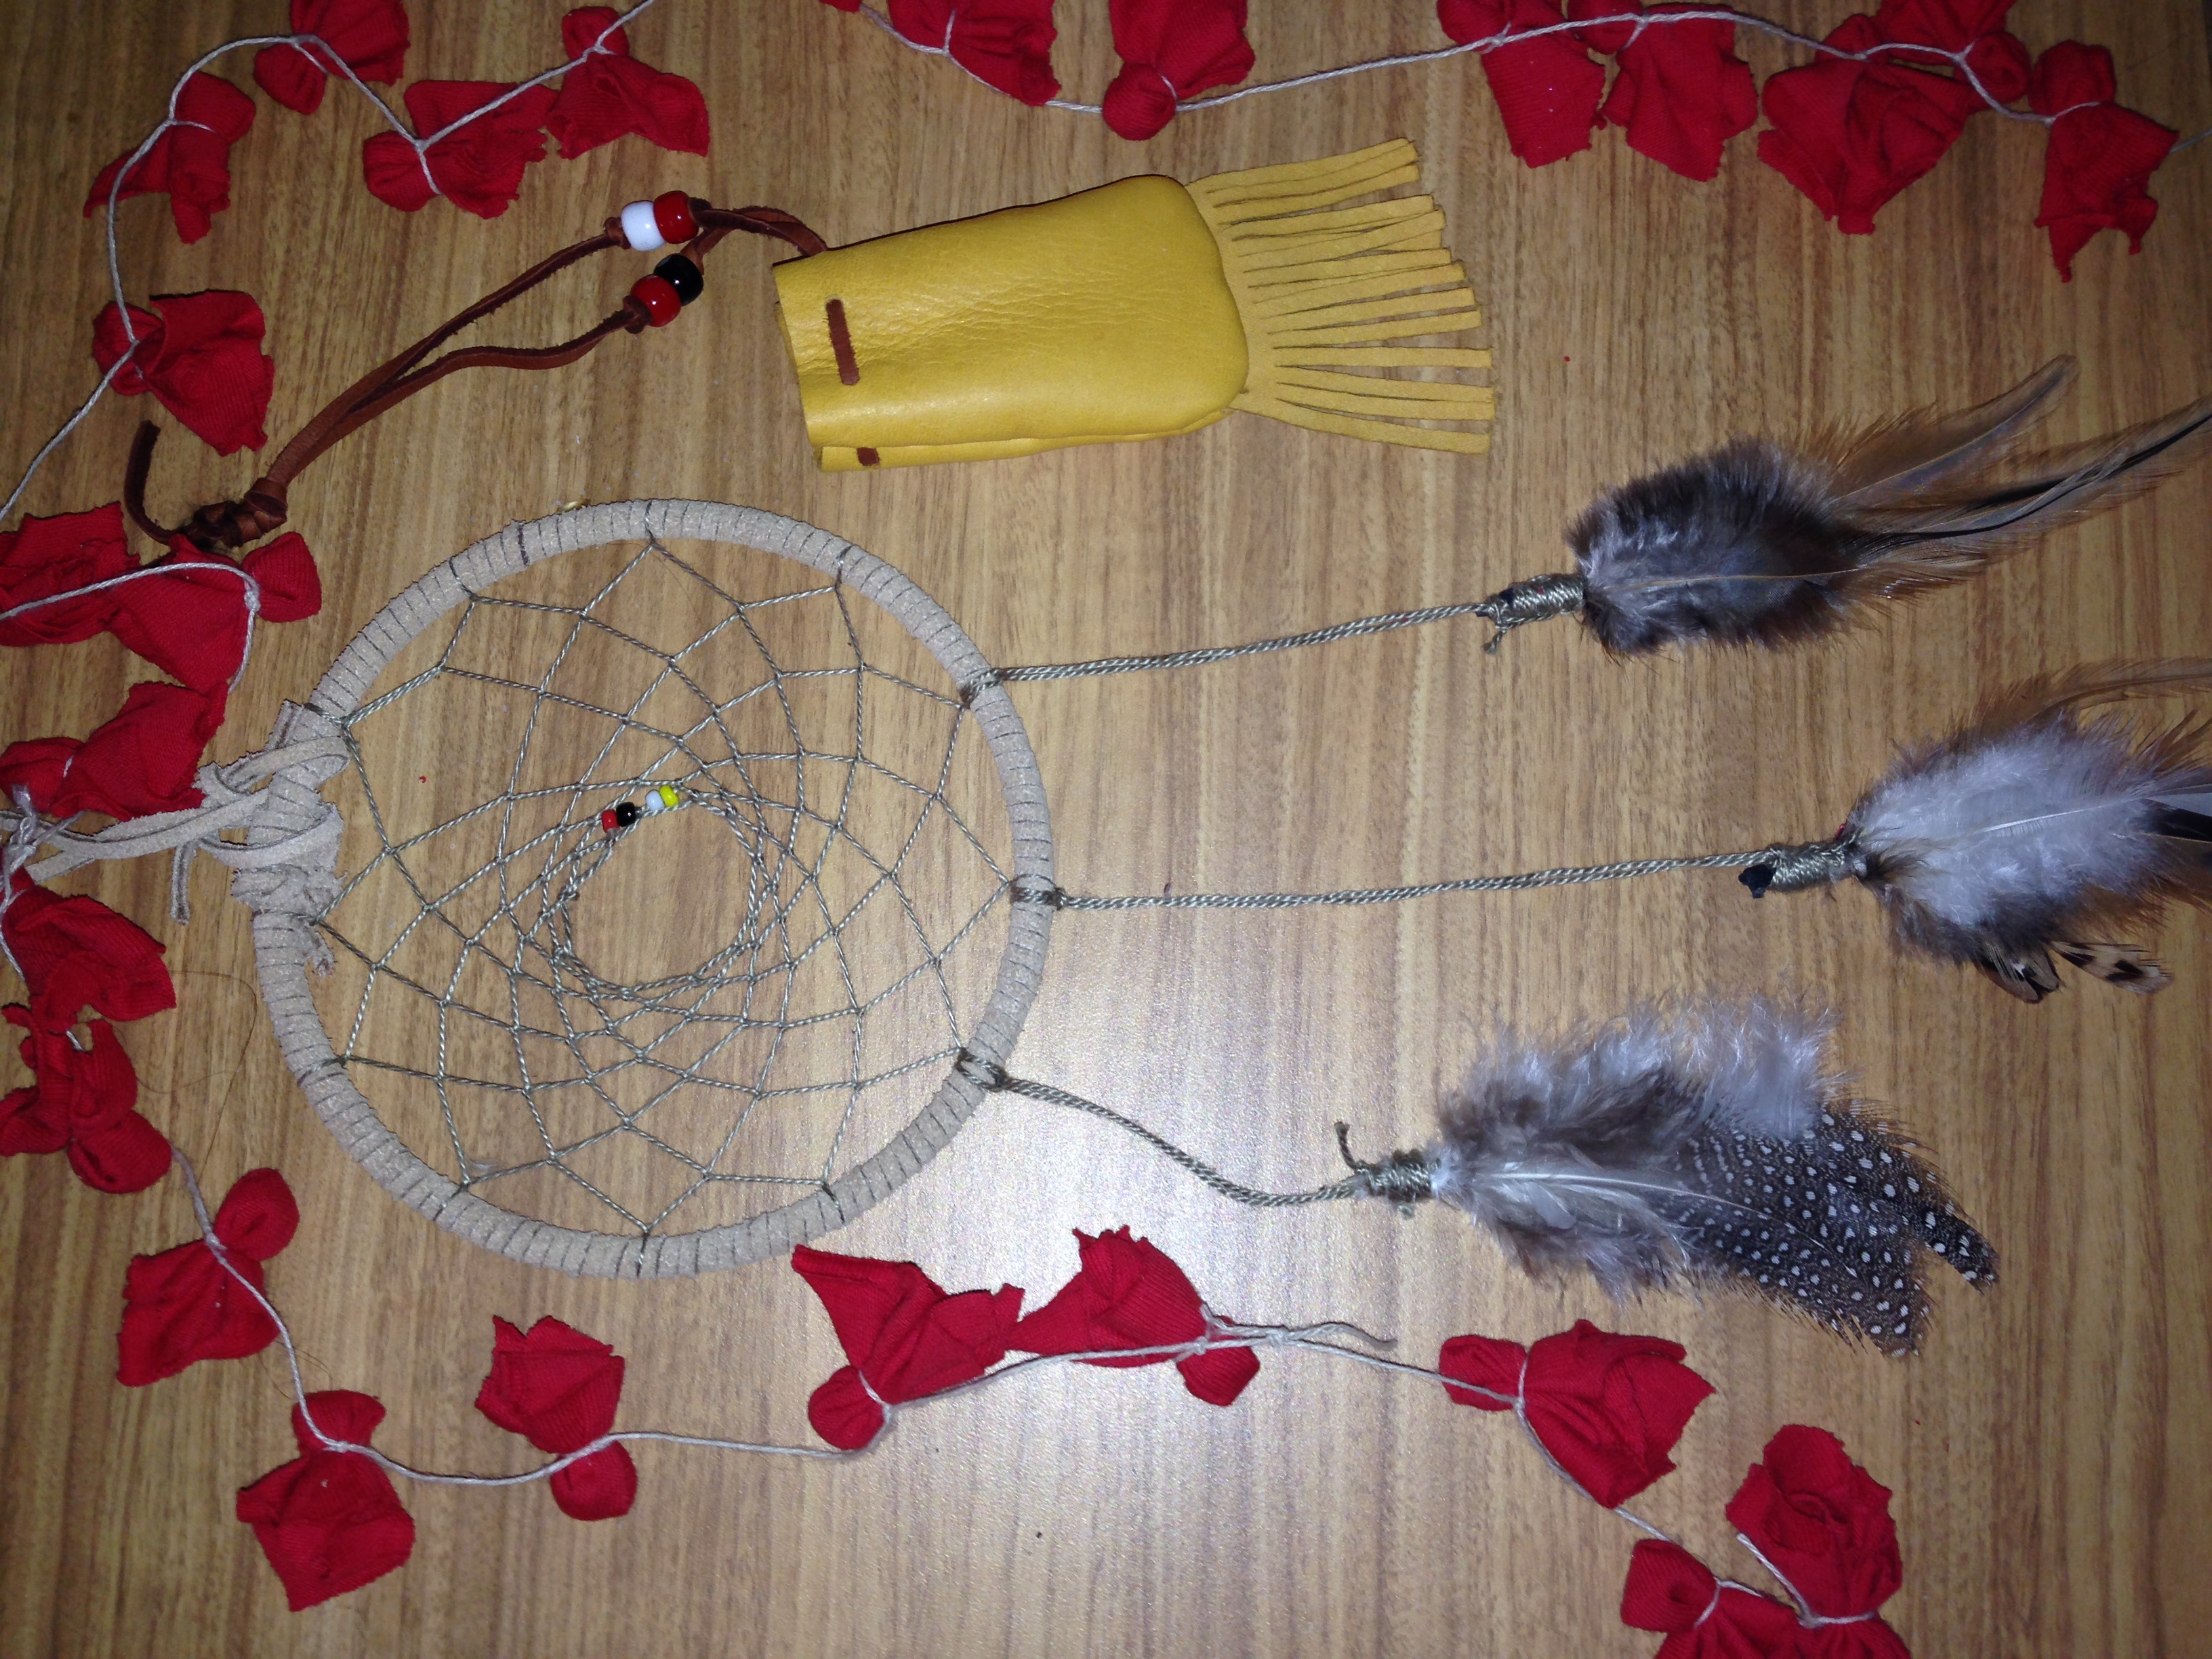 Sioux Indian Dream Catchers Lakota Crafts Significance of Dream Catchers and Prayer Ties 23